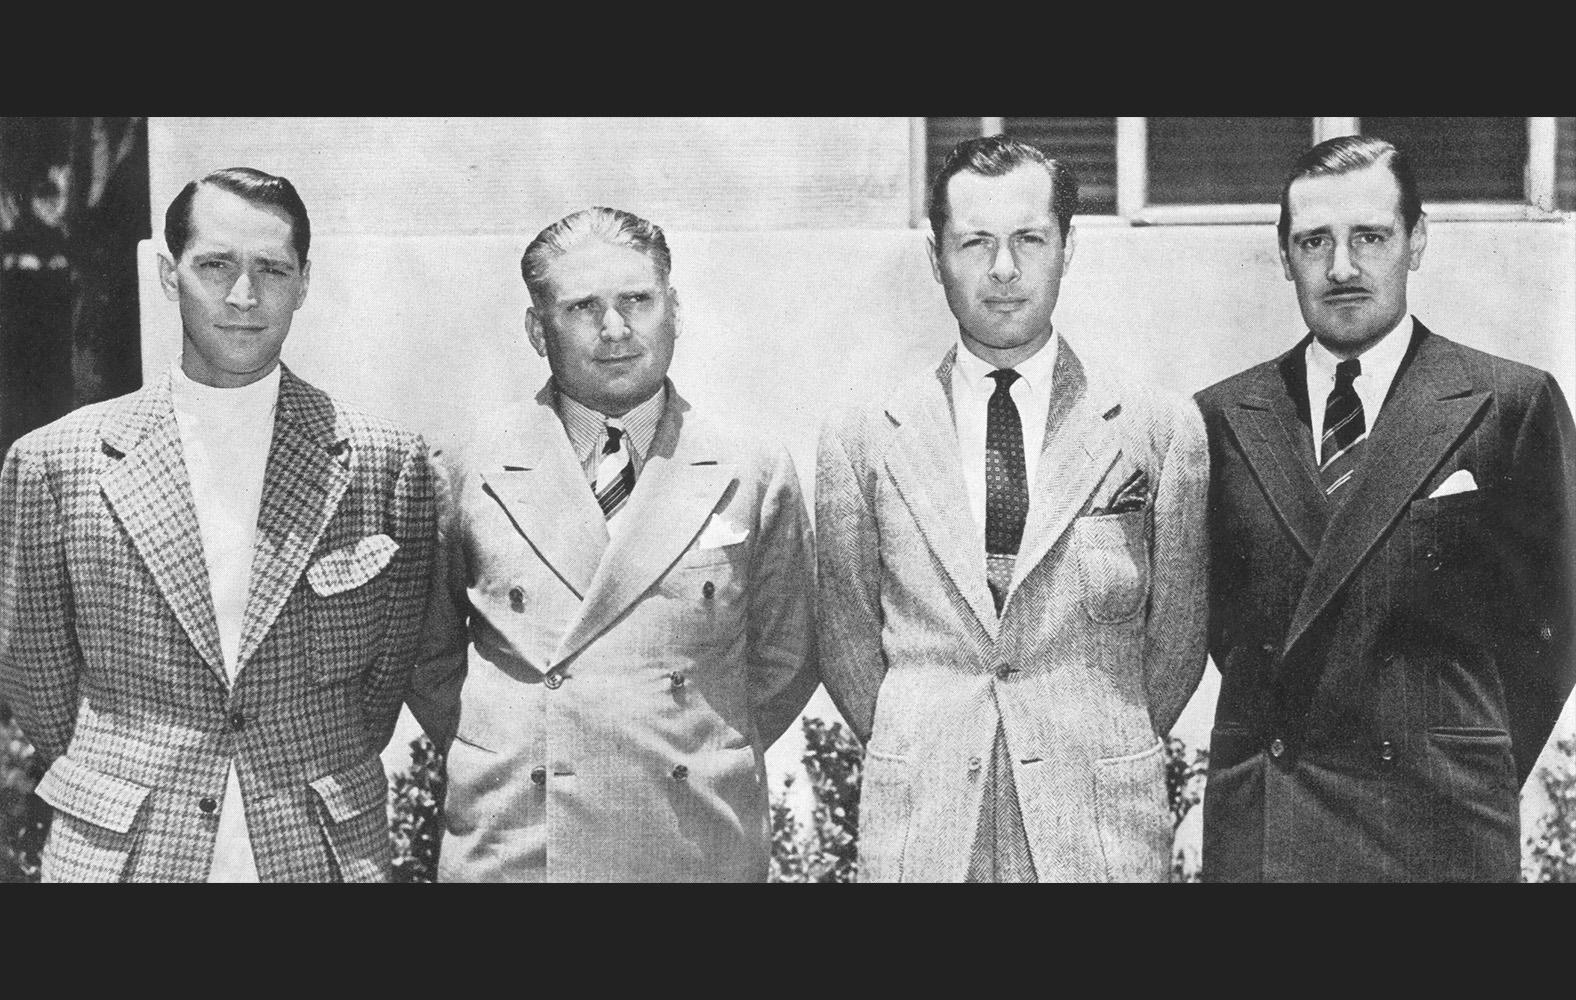 SAG recognized by studios, signs first contract. Negotiating Committee: Franchot Tone, Aubrey Blair, Robert Montgomery, Kenneth Thomson.